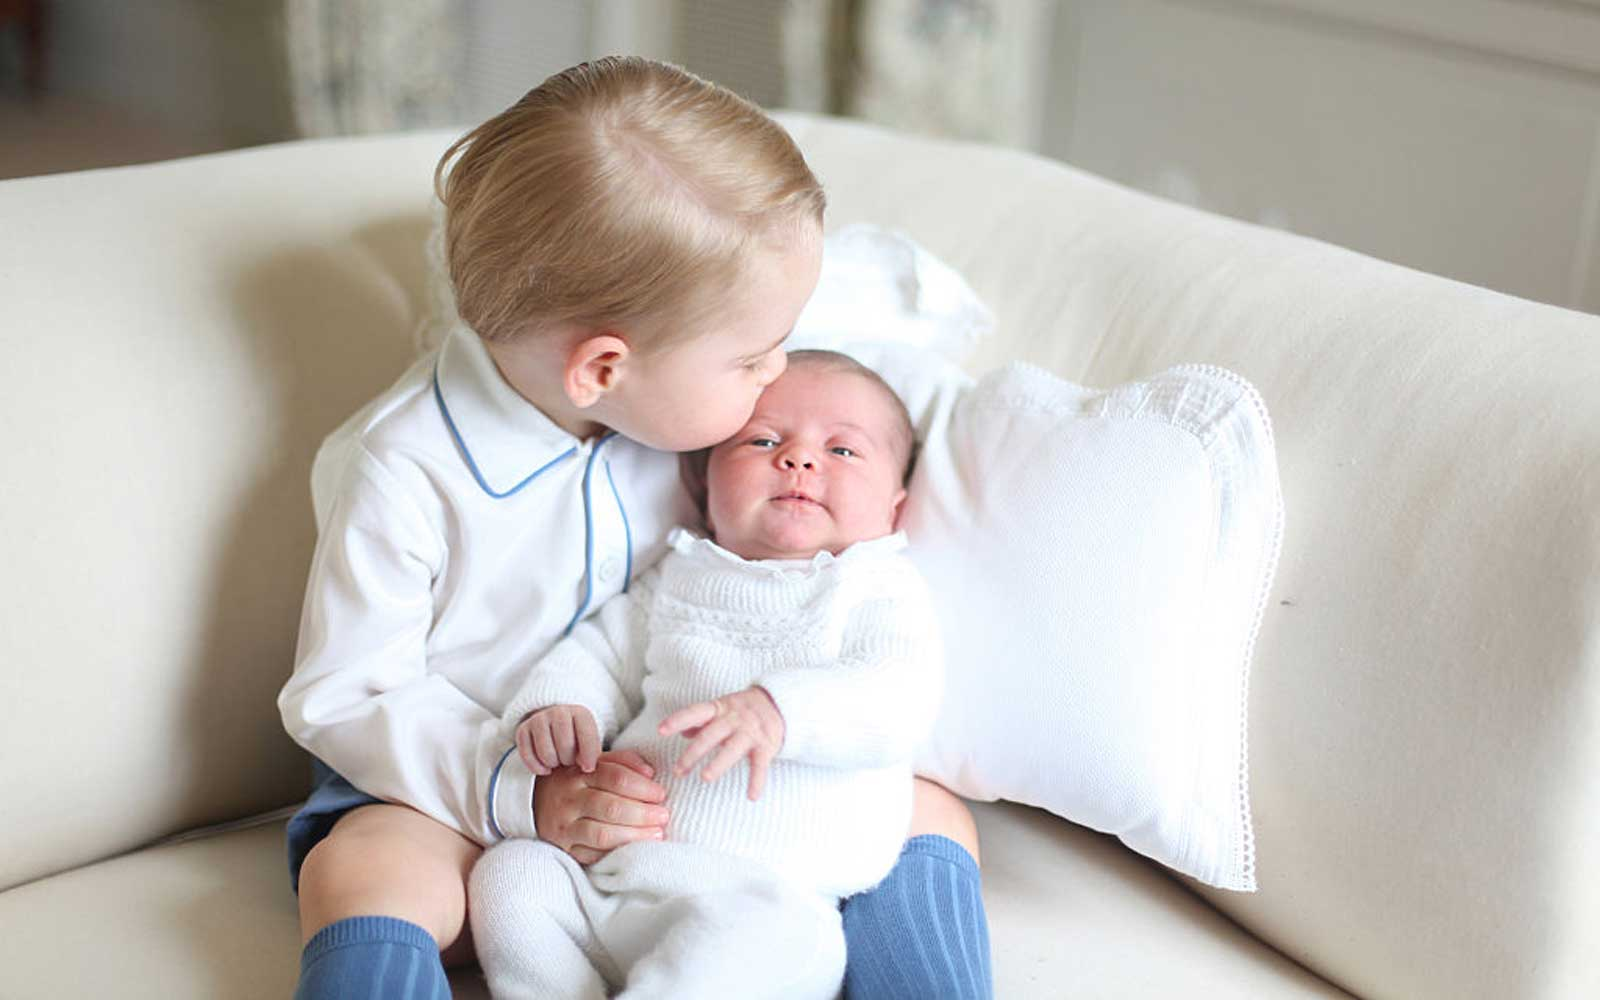 Prince George Is the Cutest Big Brother — Here Are the Photos to Prove It